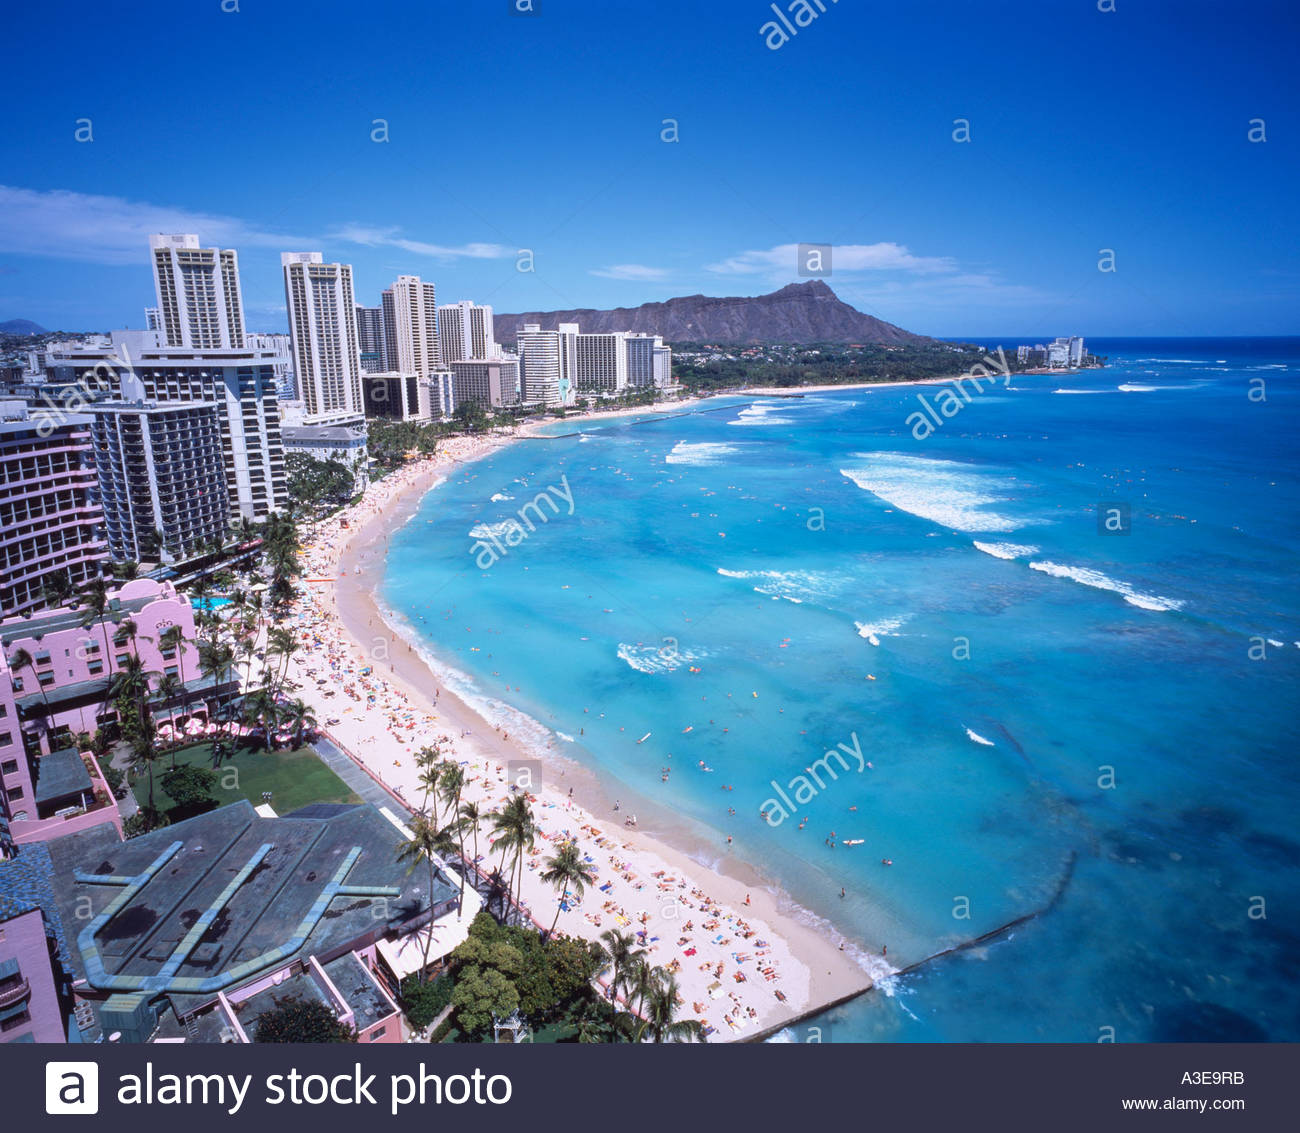 Stock photo waikiki beach diamond head resort oahu hawaii united states of america sky clouds building sea sandy beach ship people